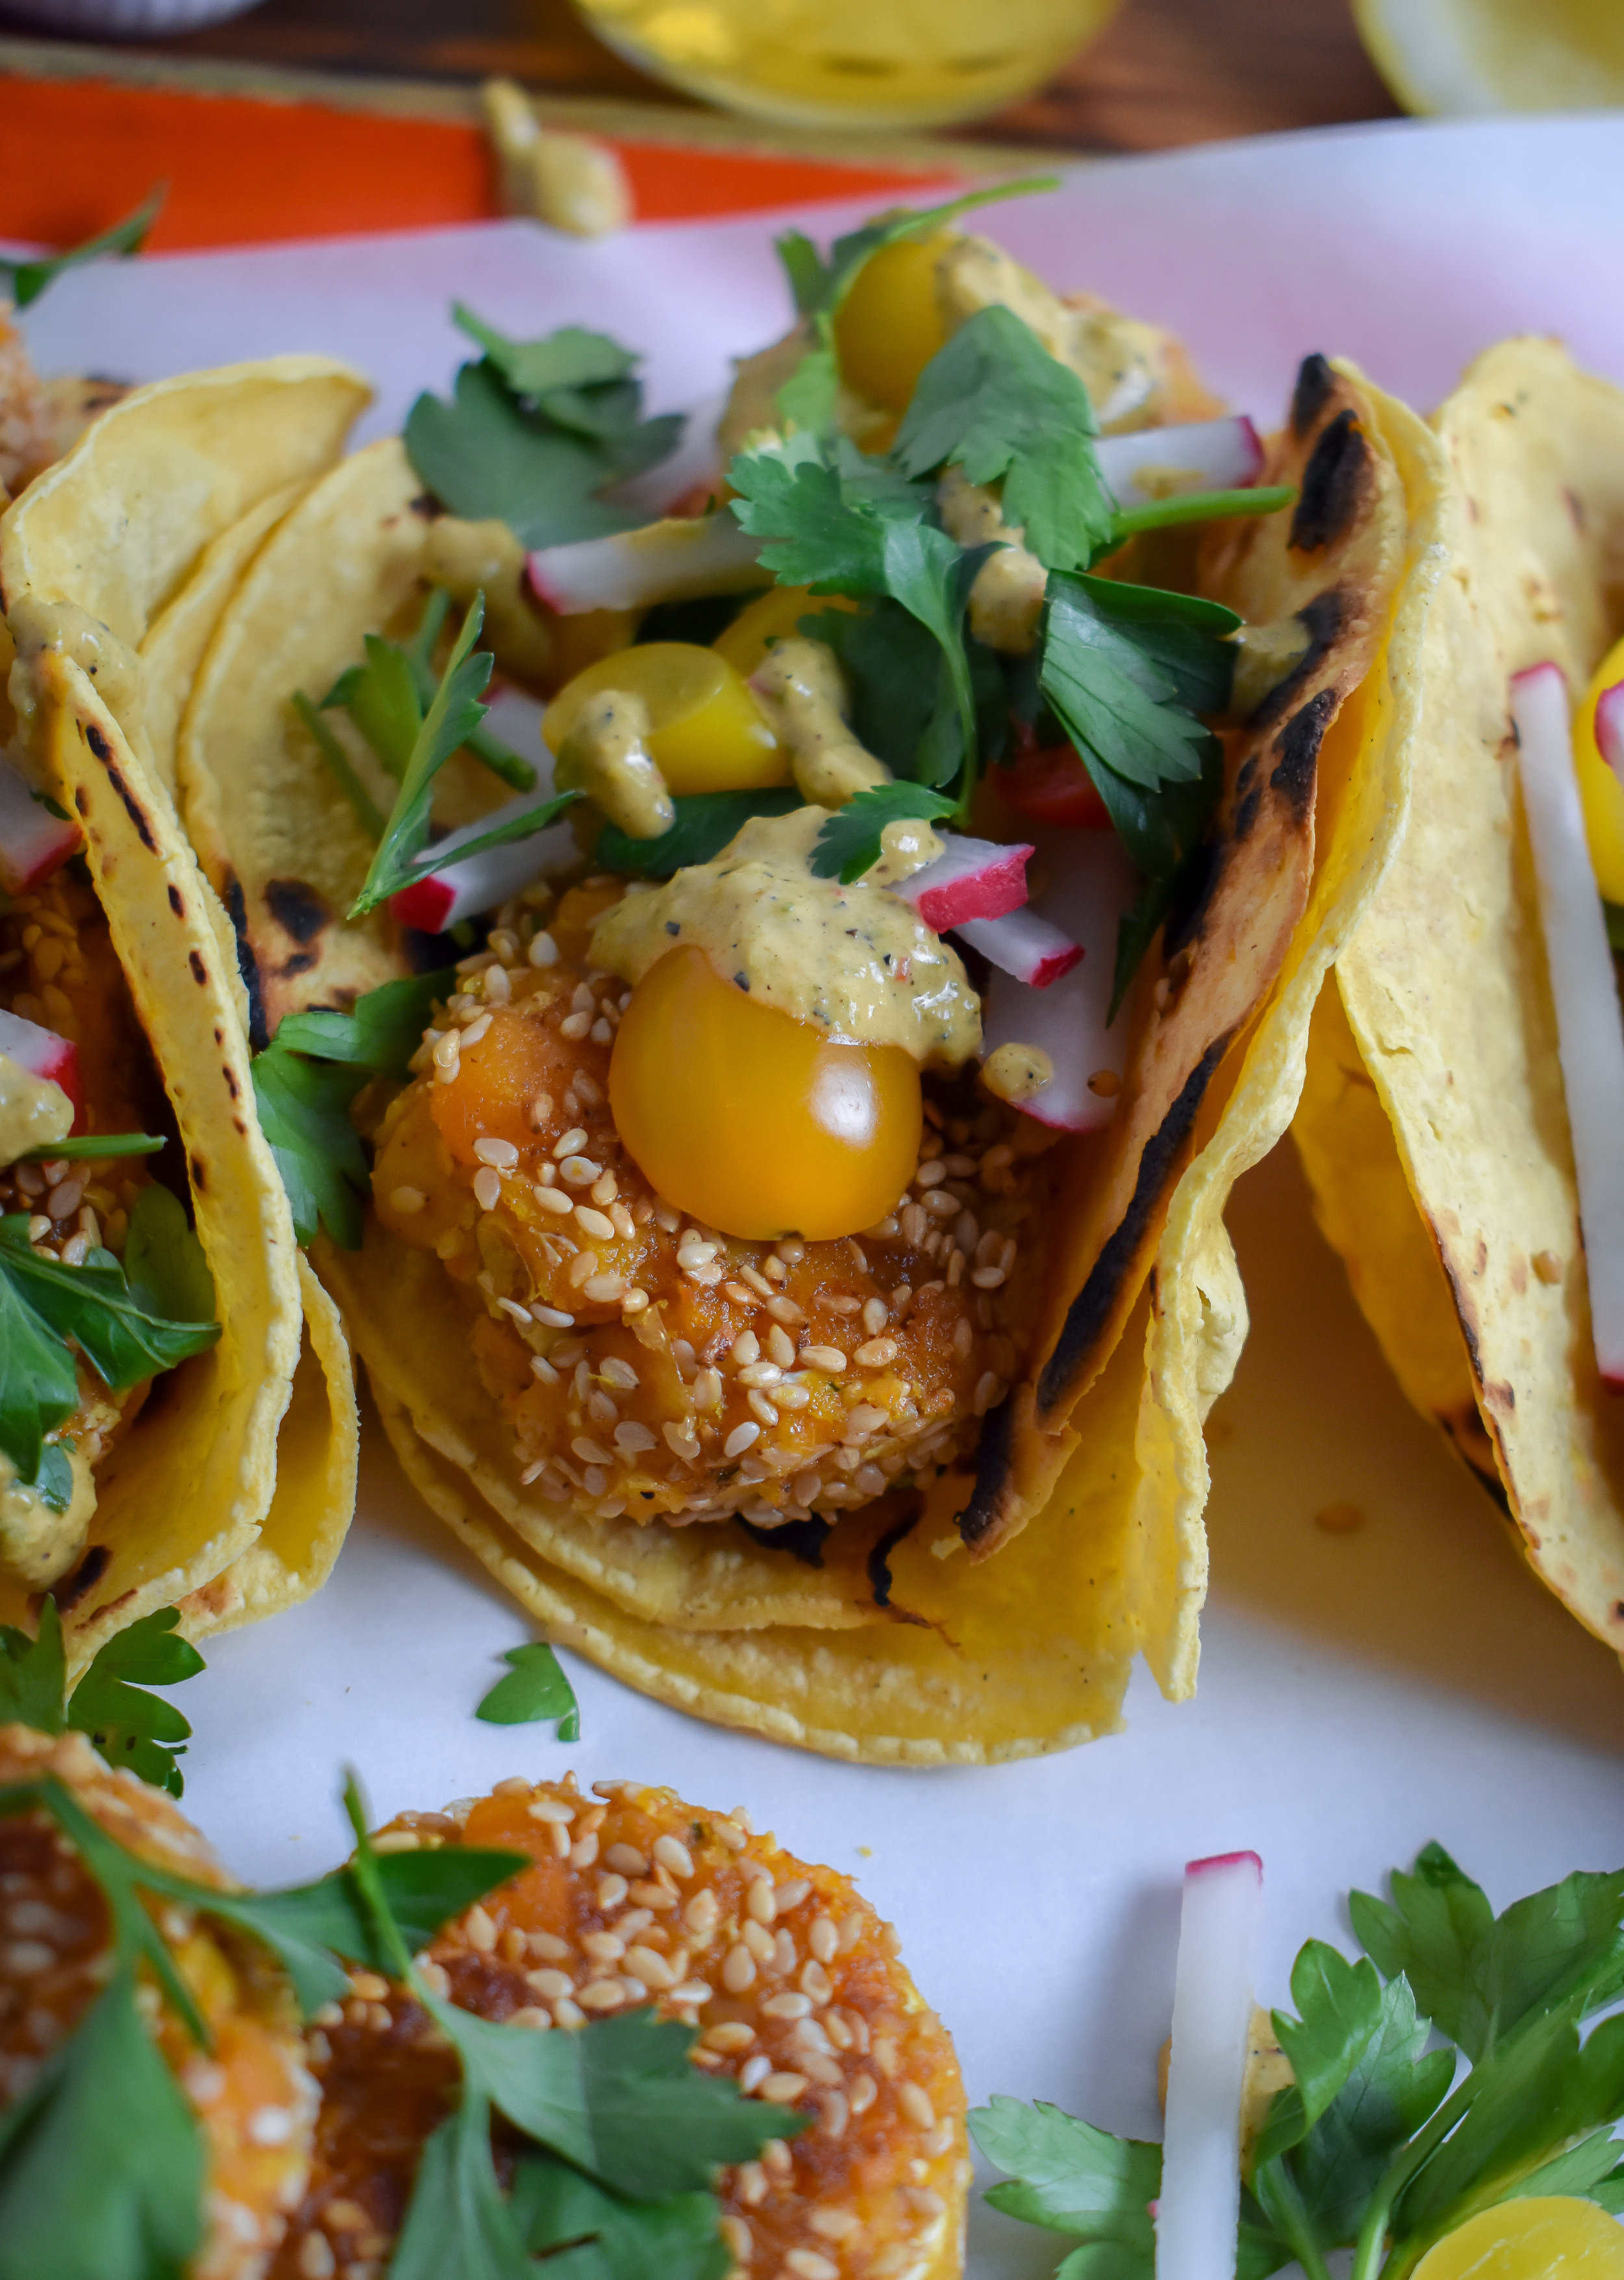 8. To finish, toast up corn tortillas (double up per tacos), then layer on falafel, charred poblano sauce, tomatoes, cilantro/parsley, radishes, and a squeeze of lemon juice.